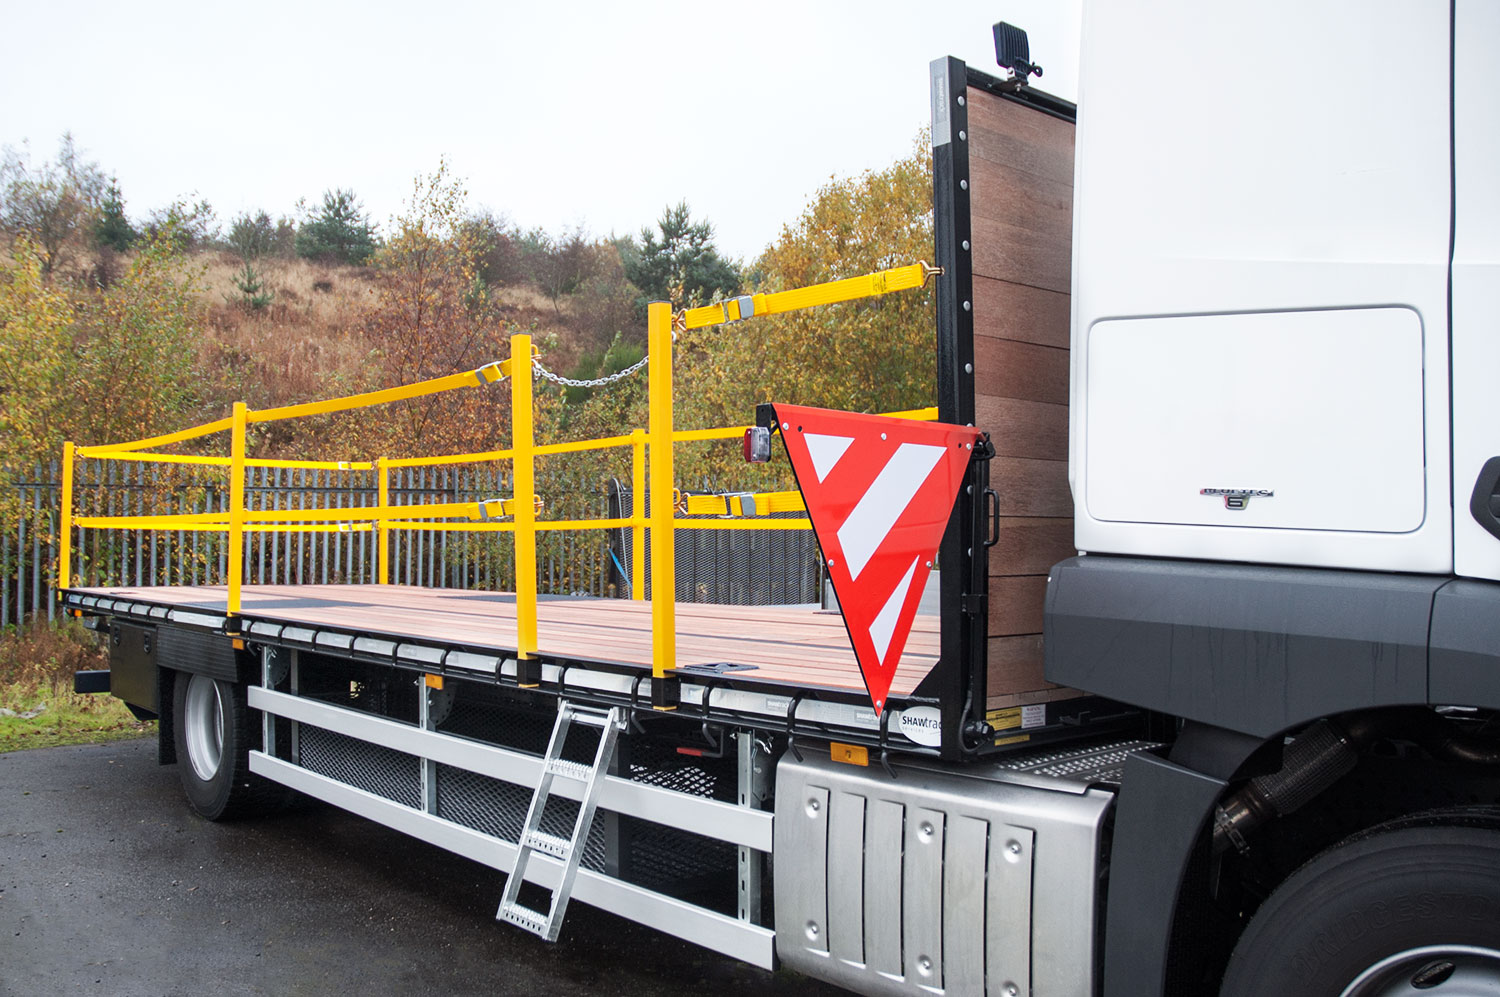 18 tonne extending beavertail with drop down ladder and side warning